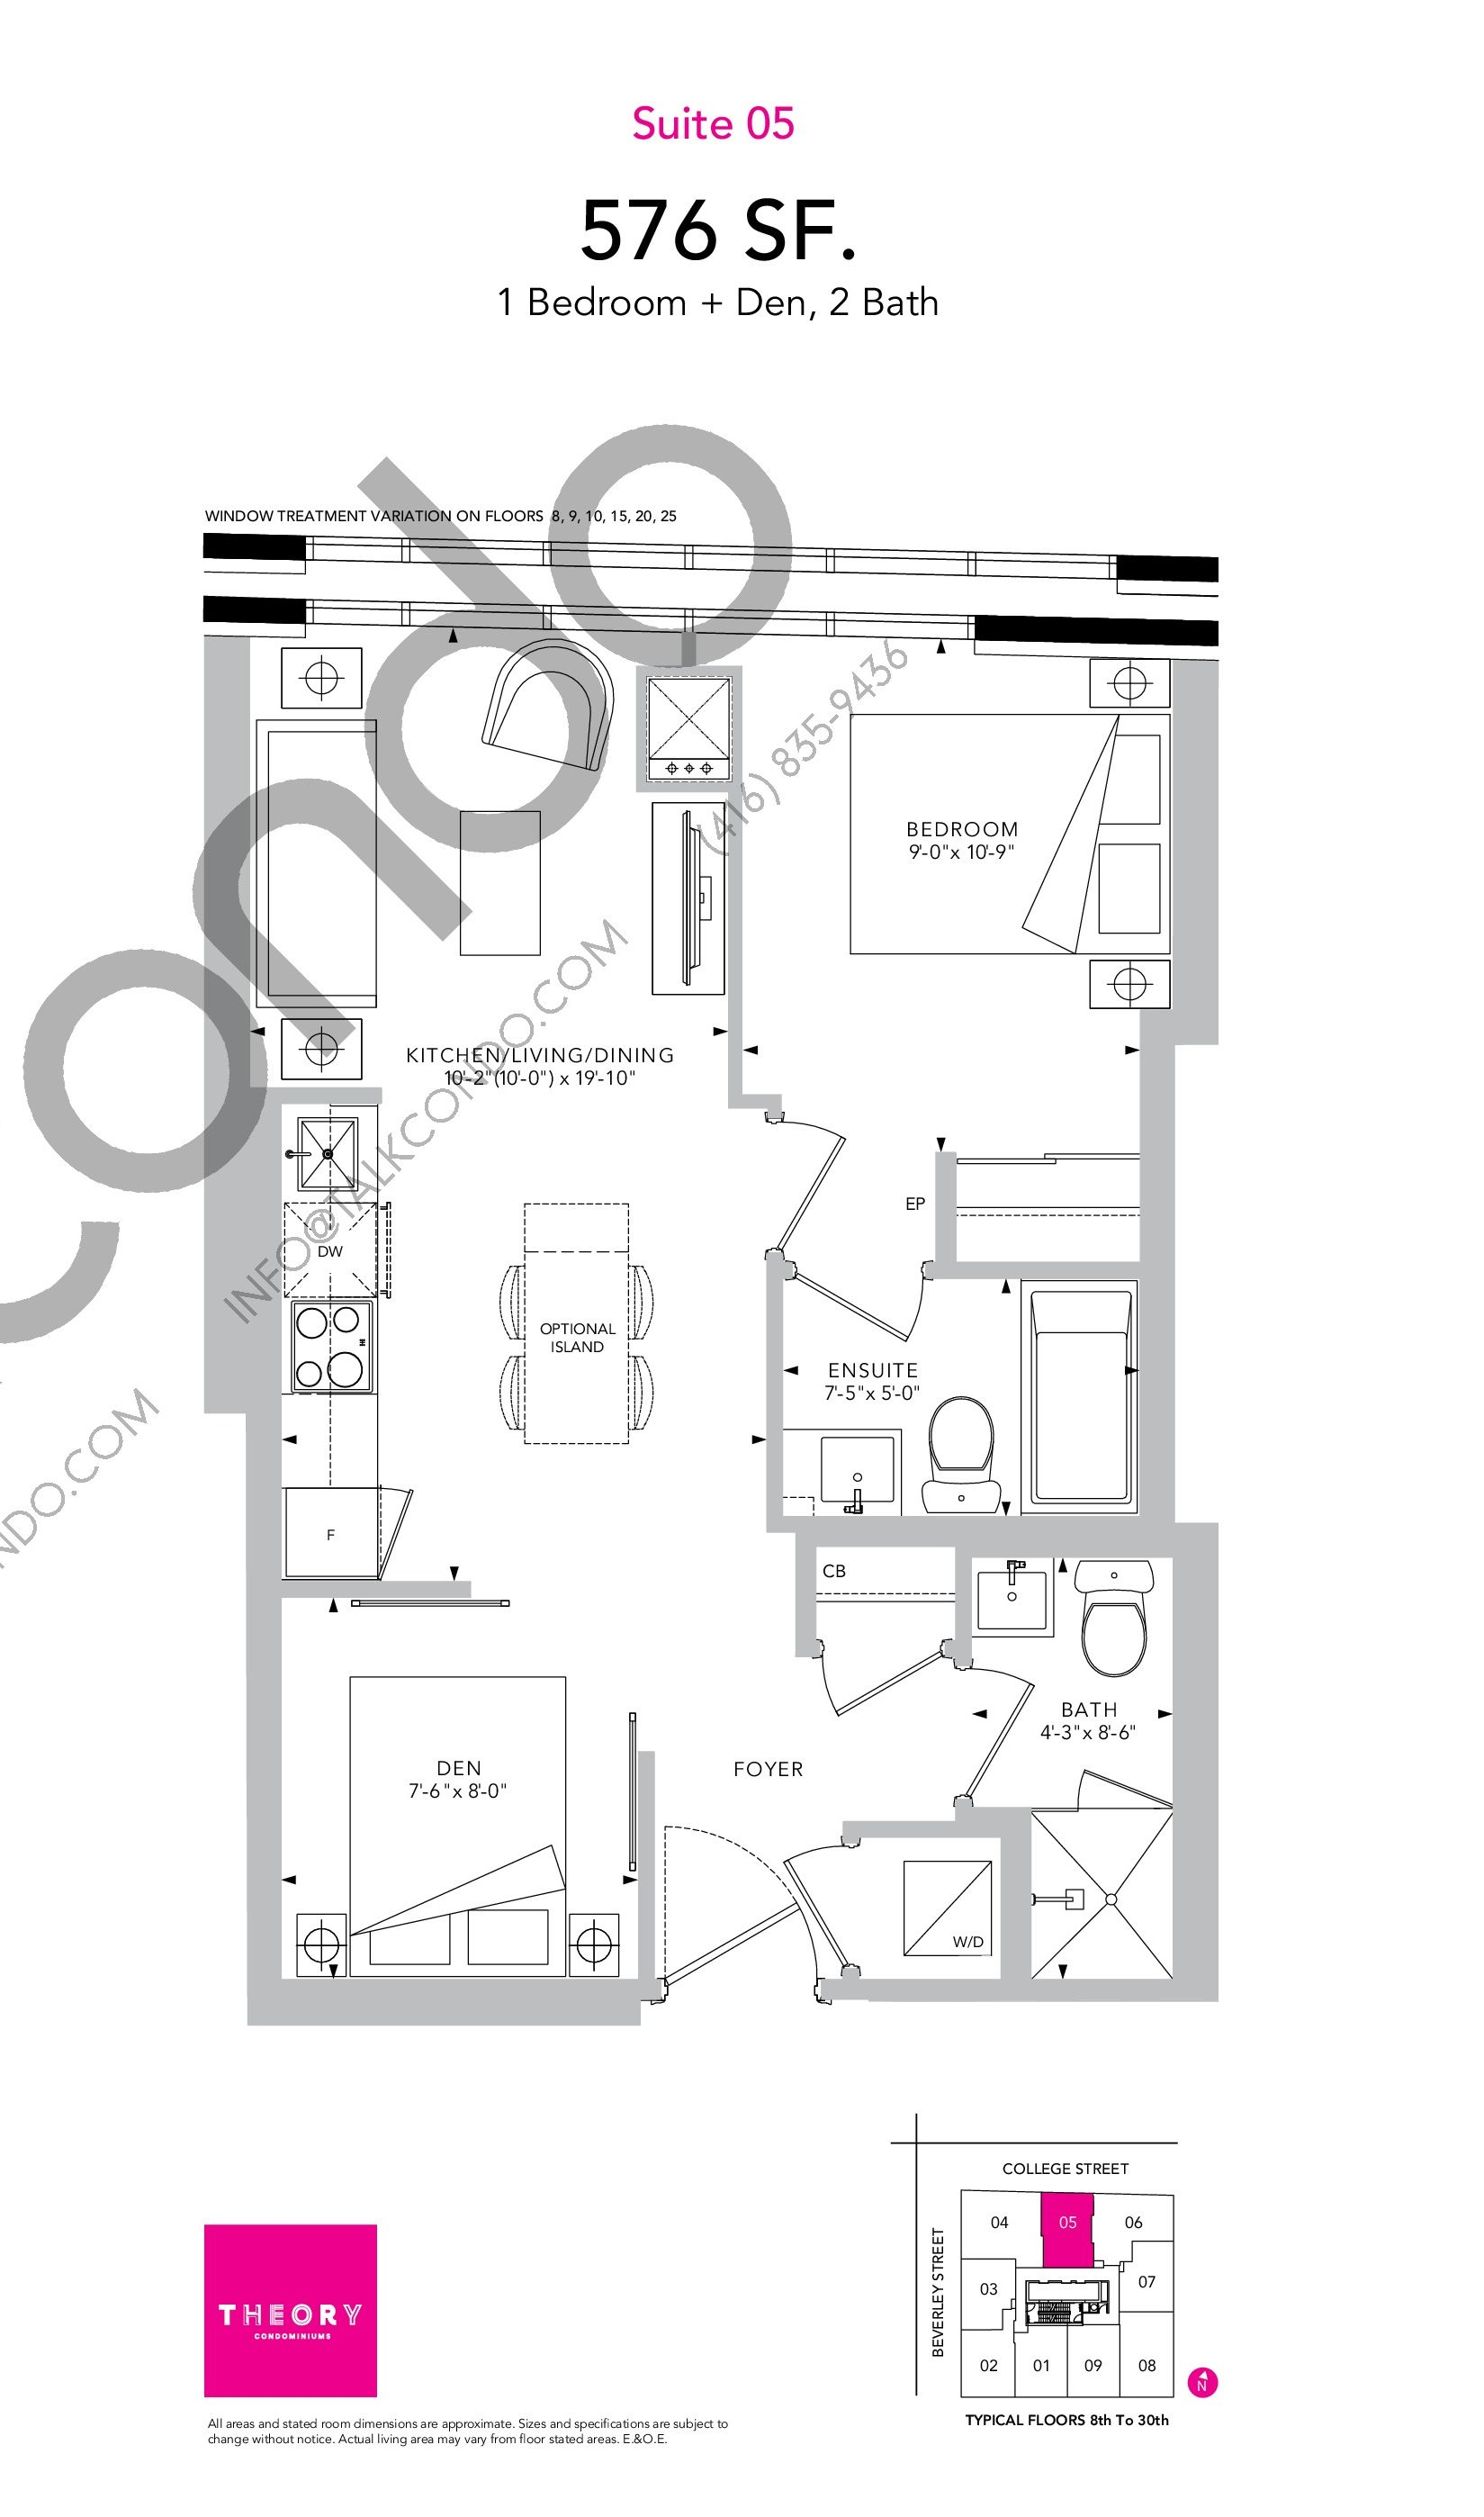 Suite 05 Floor Plan at Theory Condos - 576 sq.ft